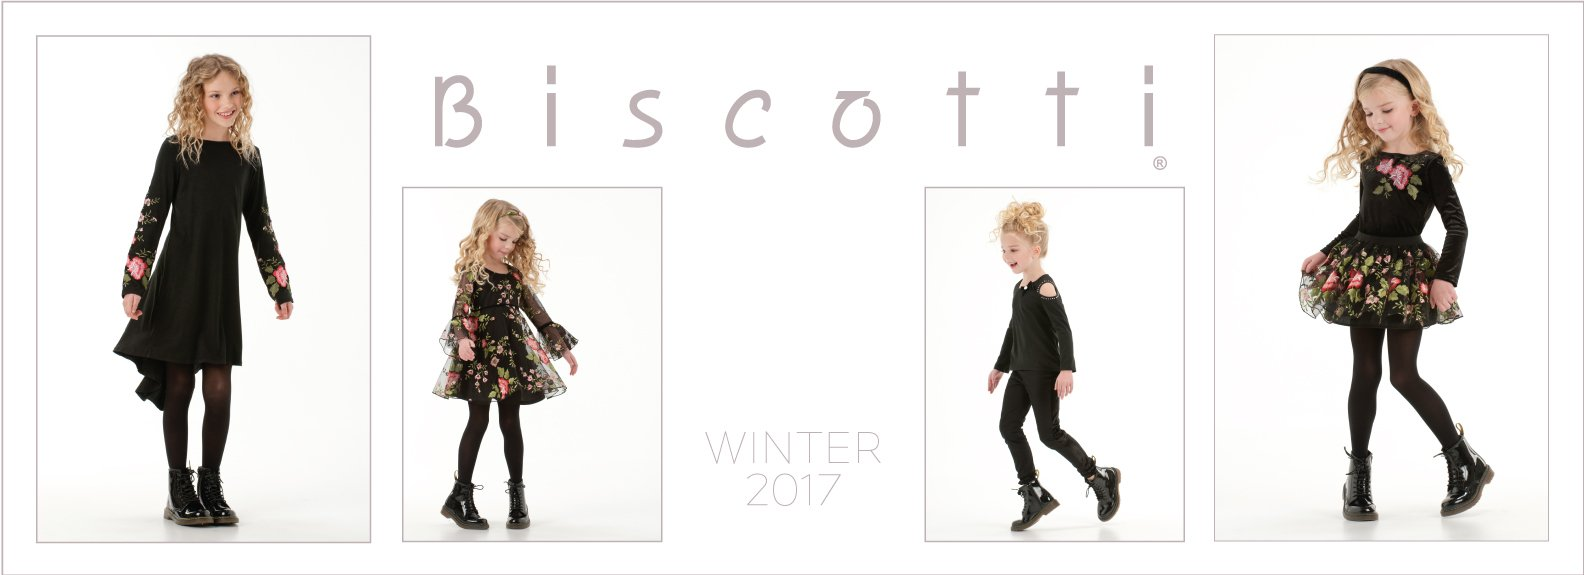 Click Here for Biscotti fashions...